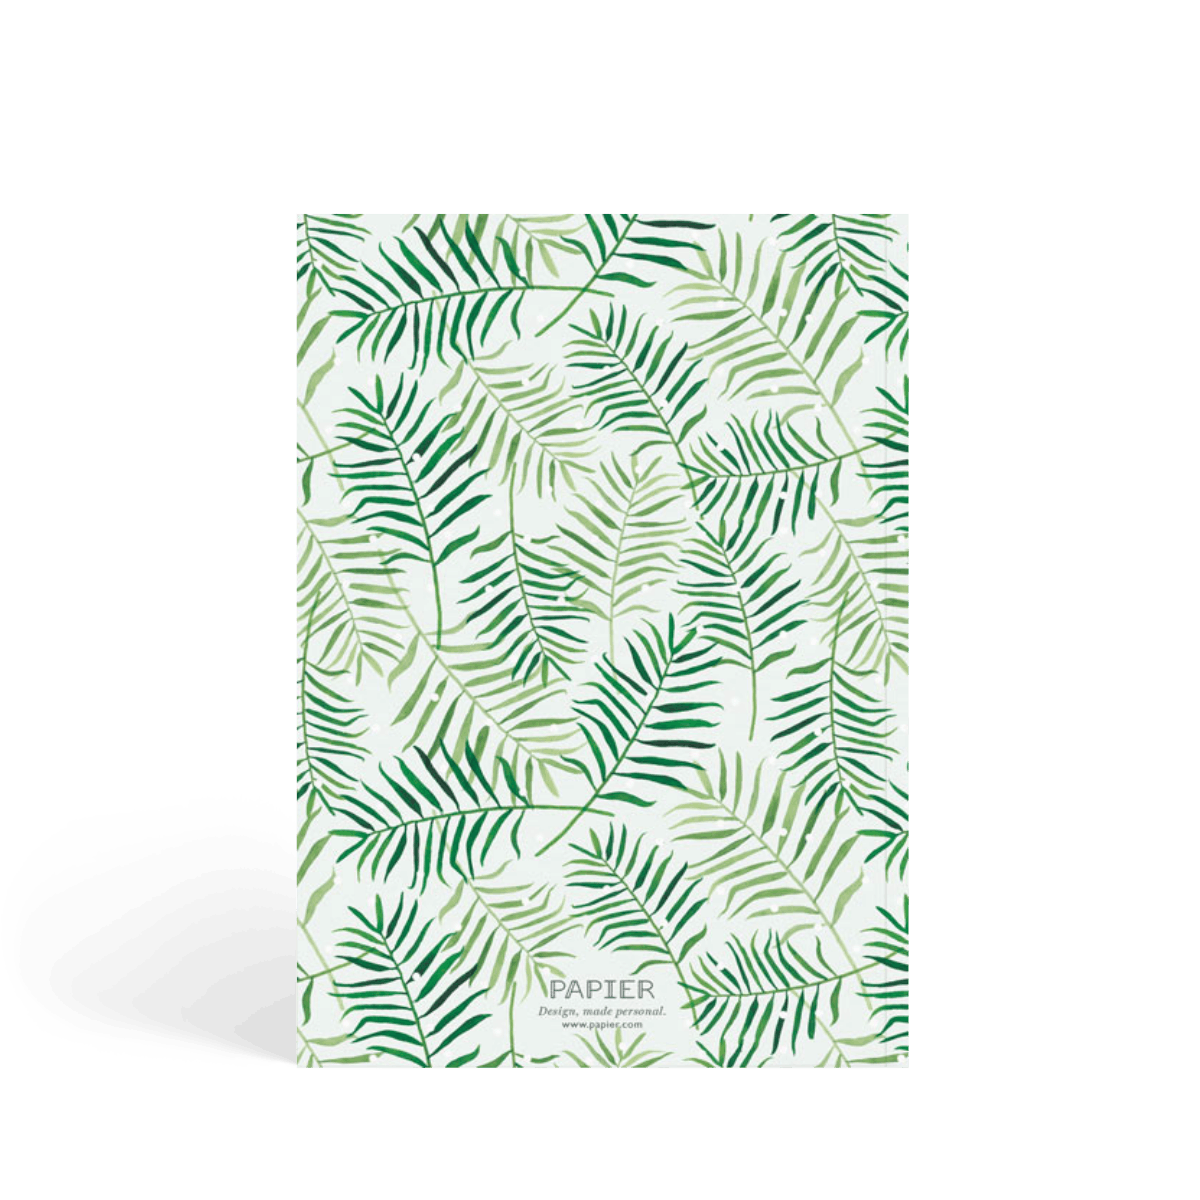 Https%3a%2f%2fwww.papier.com%2fproduct image%2f29844%2f5%2fpalm leaves 7525 back 1508768152.png?ixlib=rb 1.1